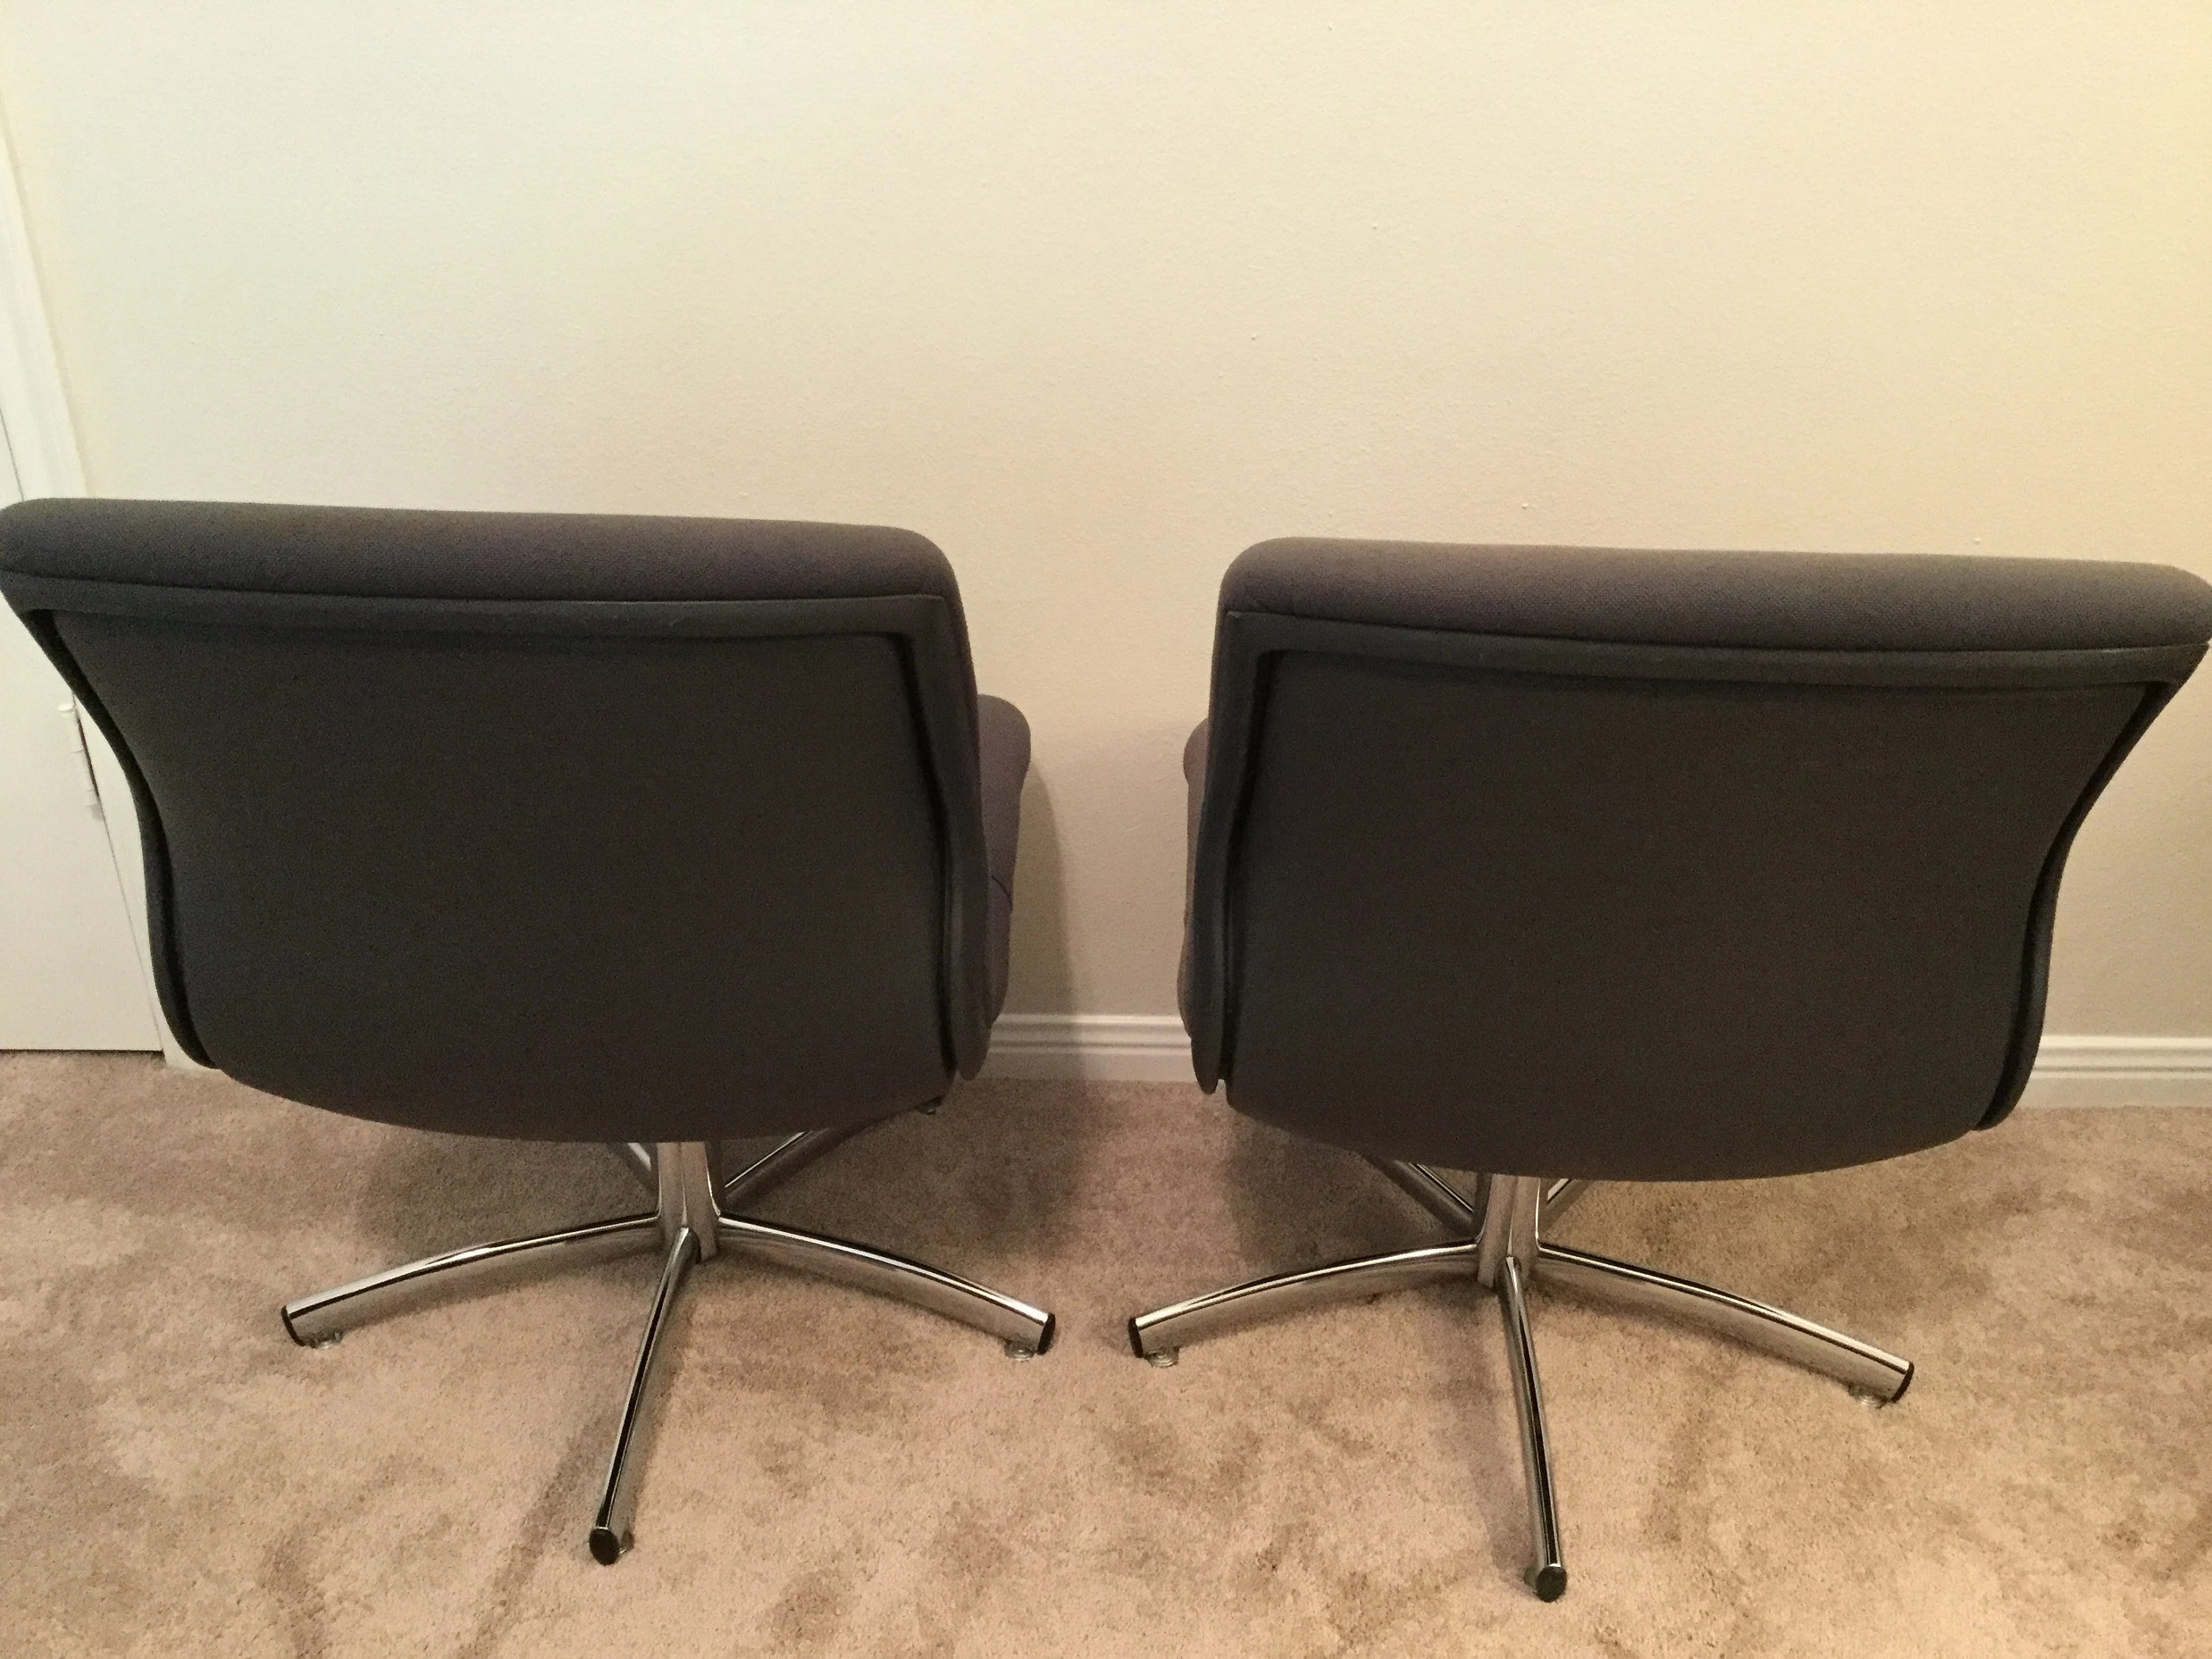 vintage steelcase chair barber chairs craigslist mcm pollock style authentic series 454 etsy image 0